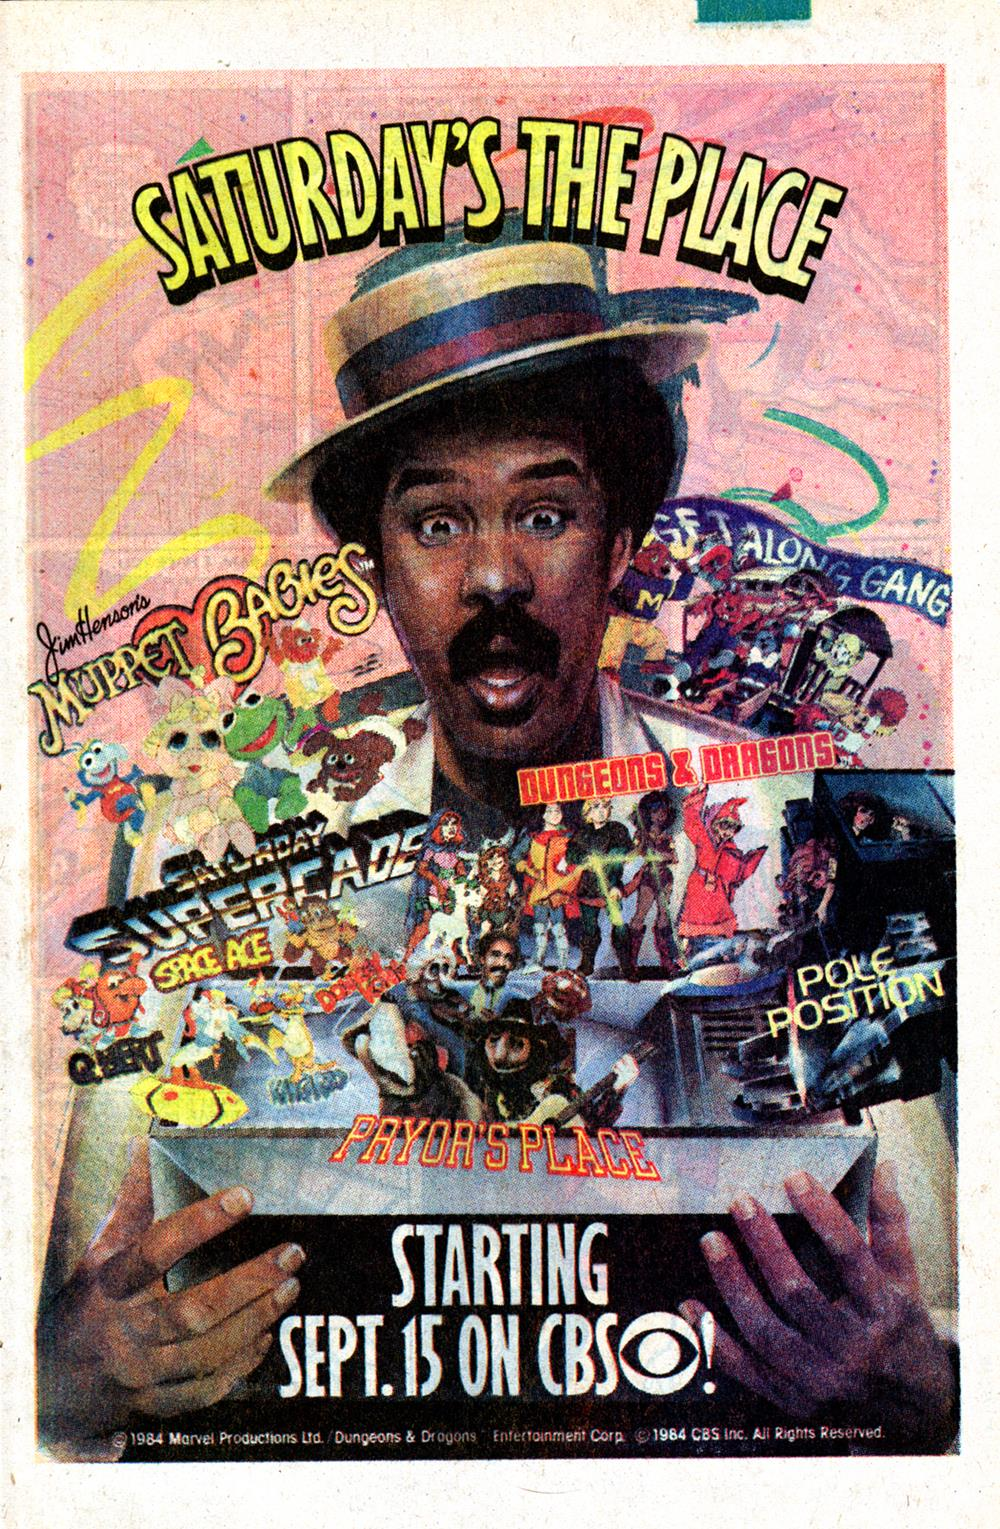 Saturday Morning Fever Podcast - comic book ad 1984 CBS cartoons